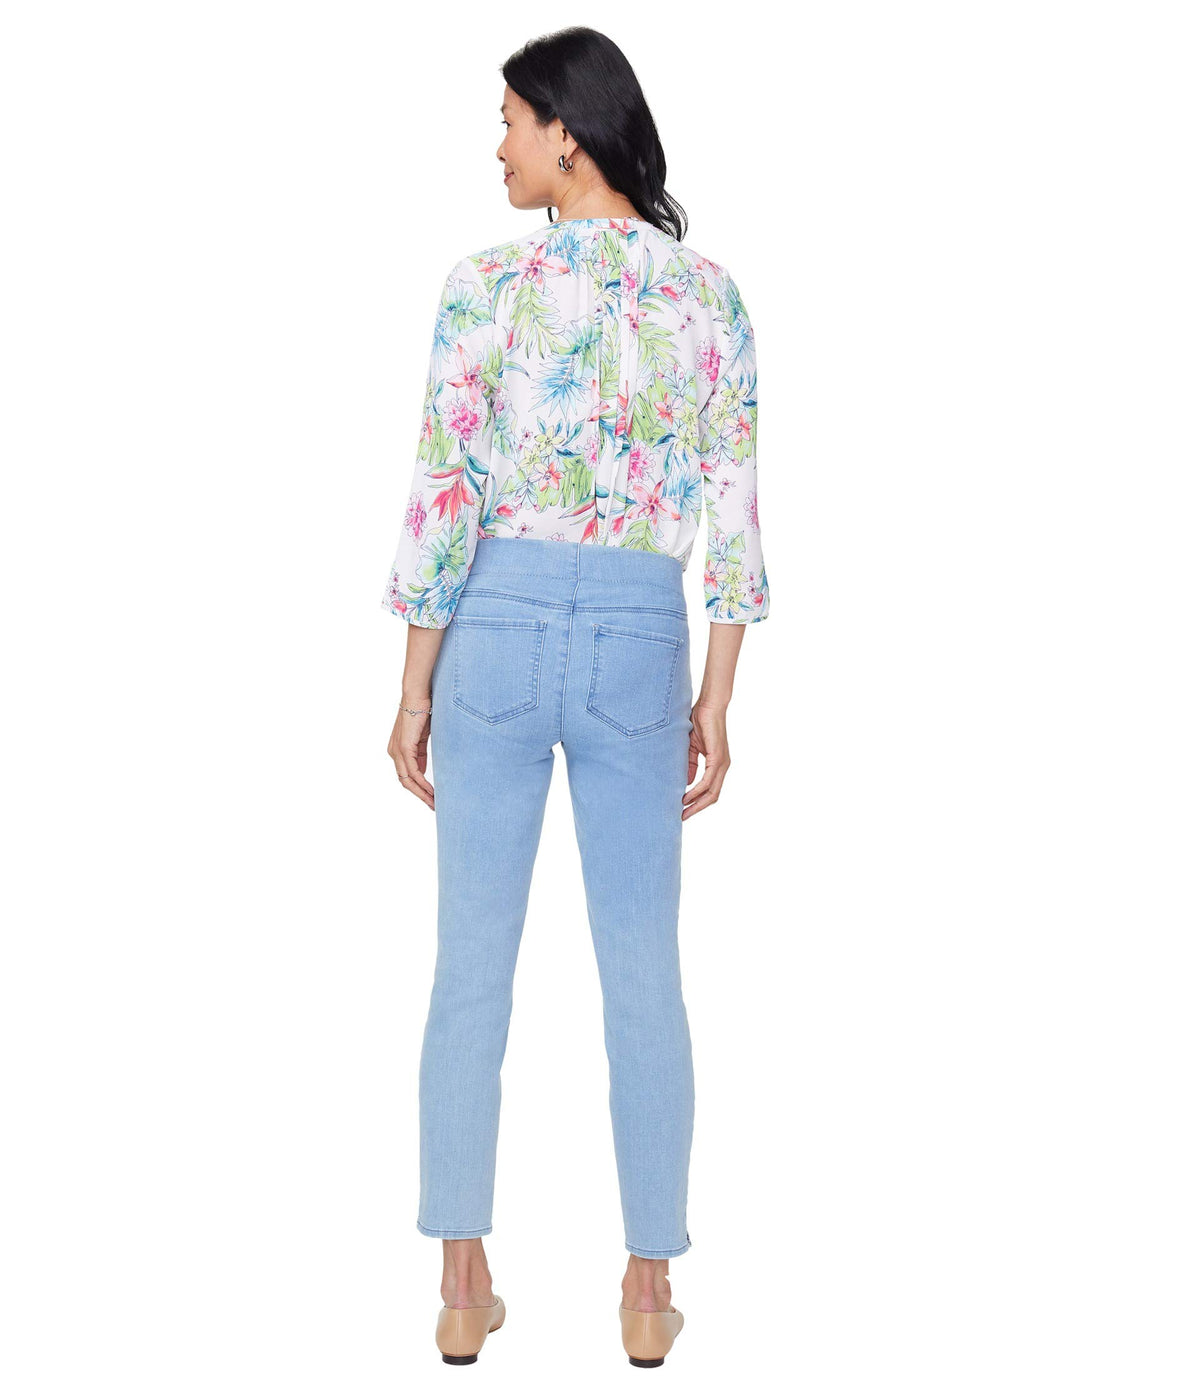 Petite Pull-On Skinny Ankle Jeans with Side Slits in Belle Isle